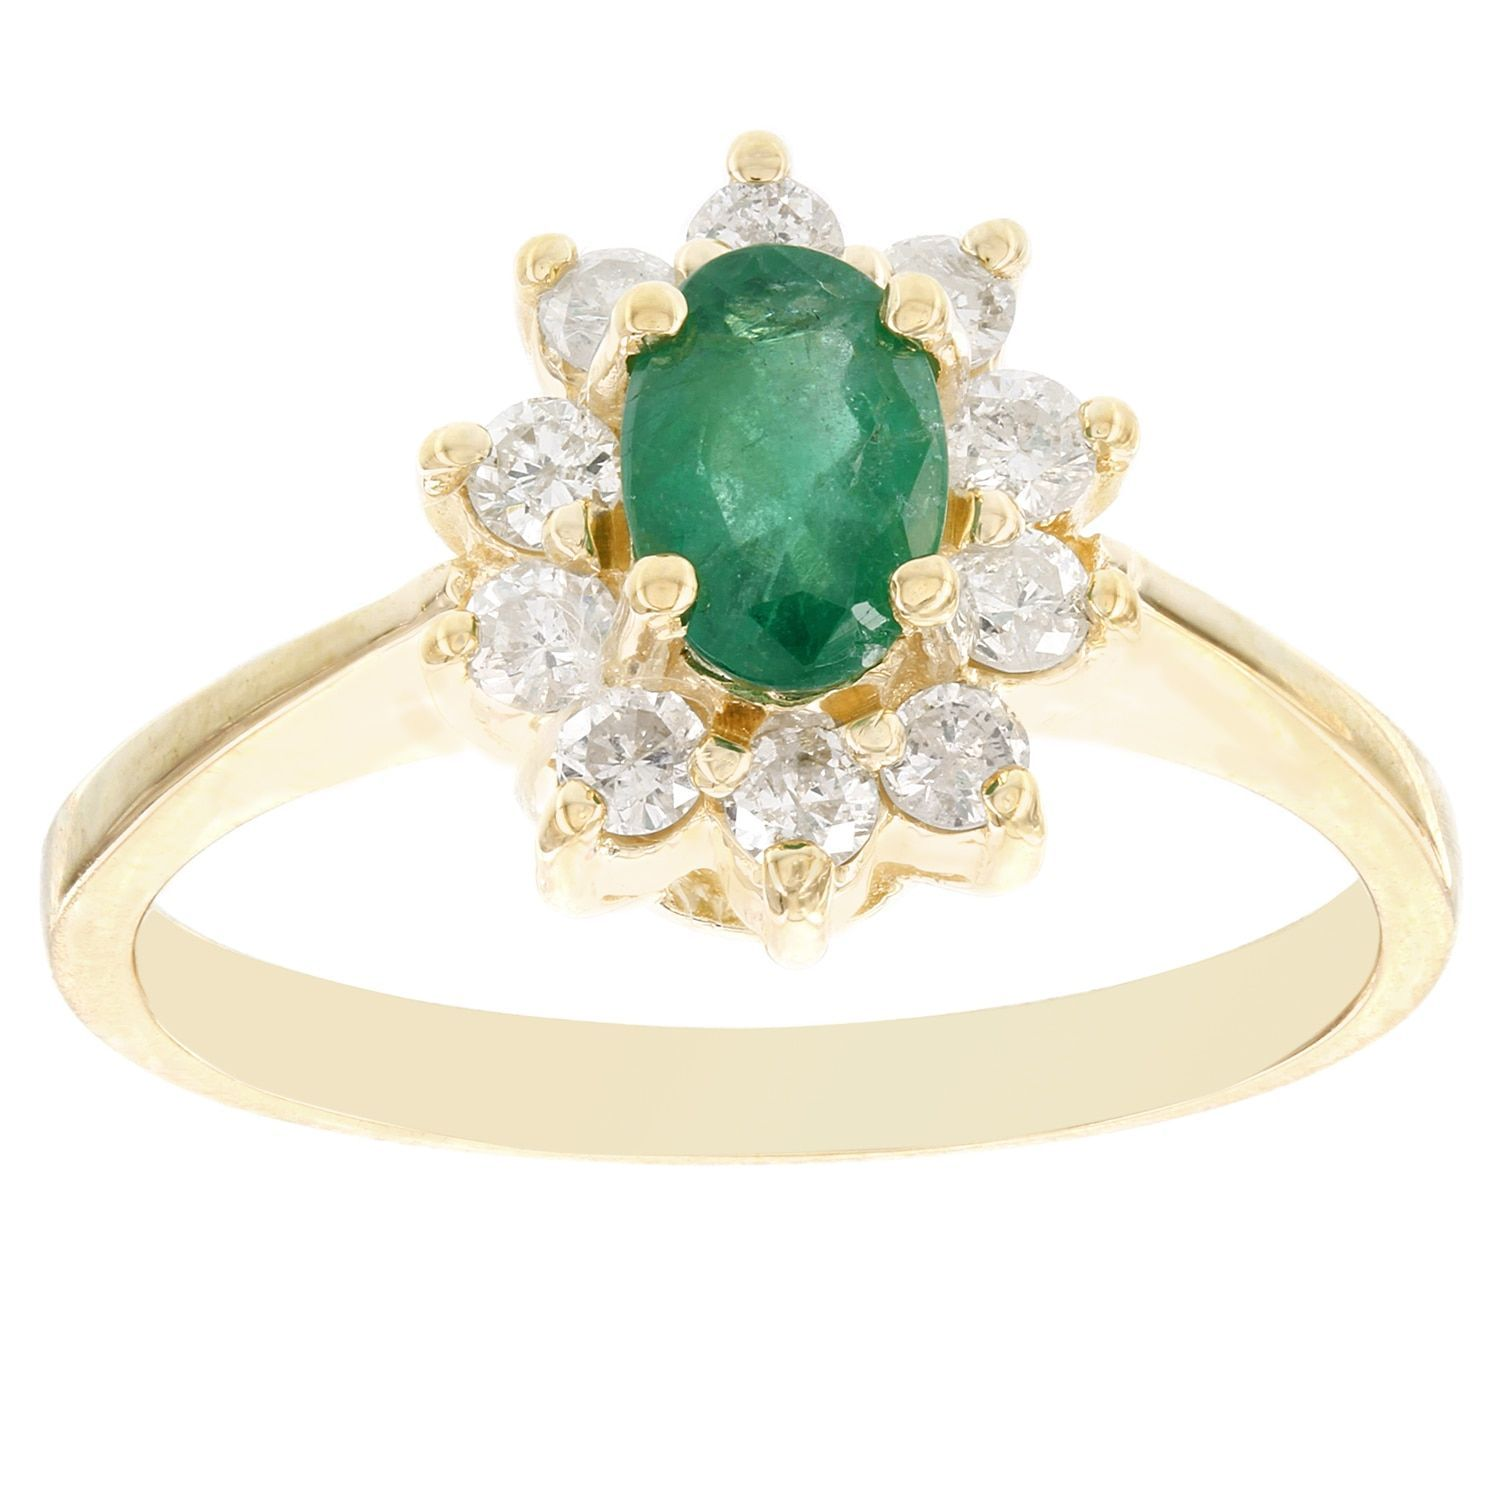 gemstone p oval w in upgrade wedding emerald ottawa rings ring with green your a style